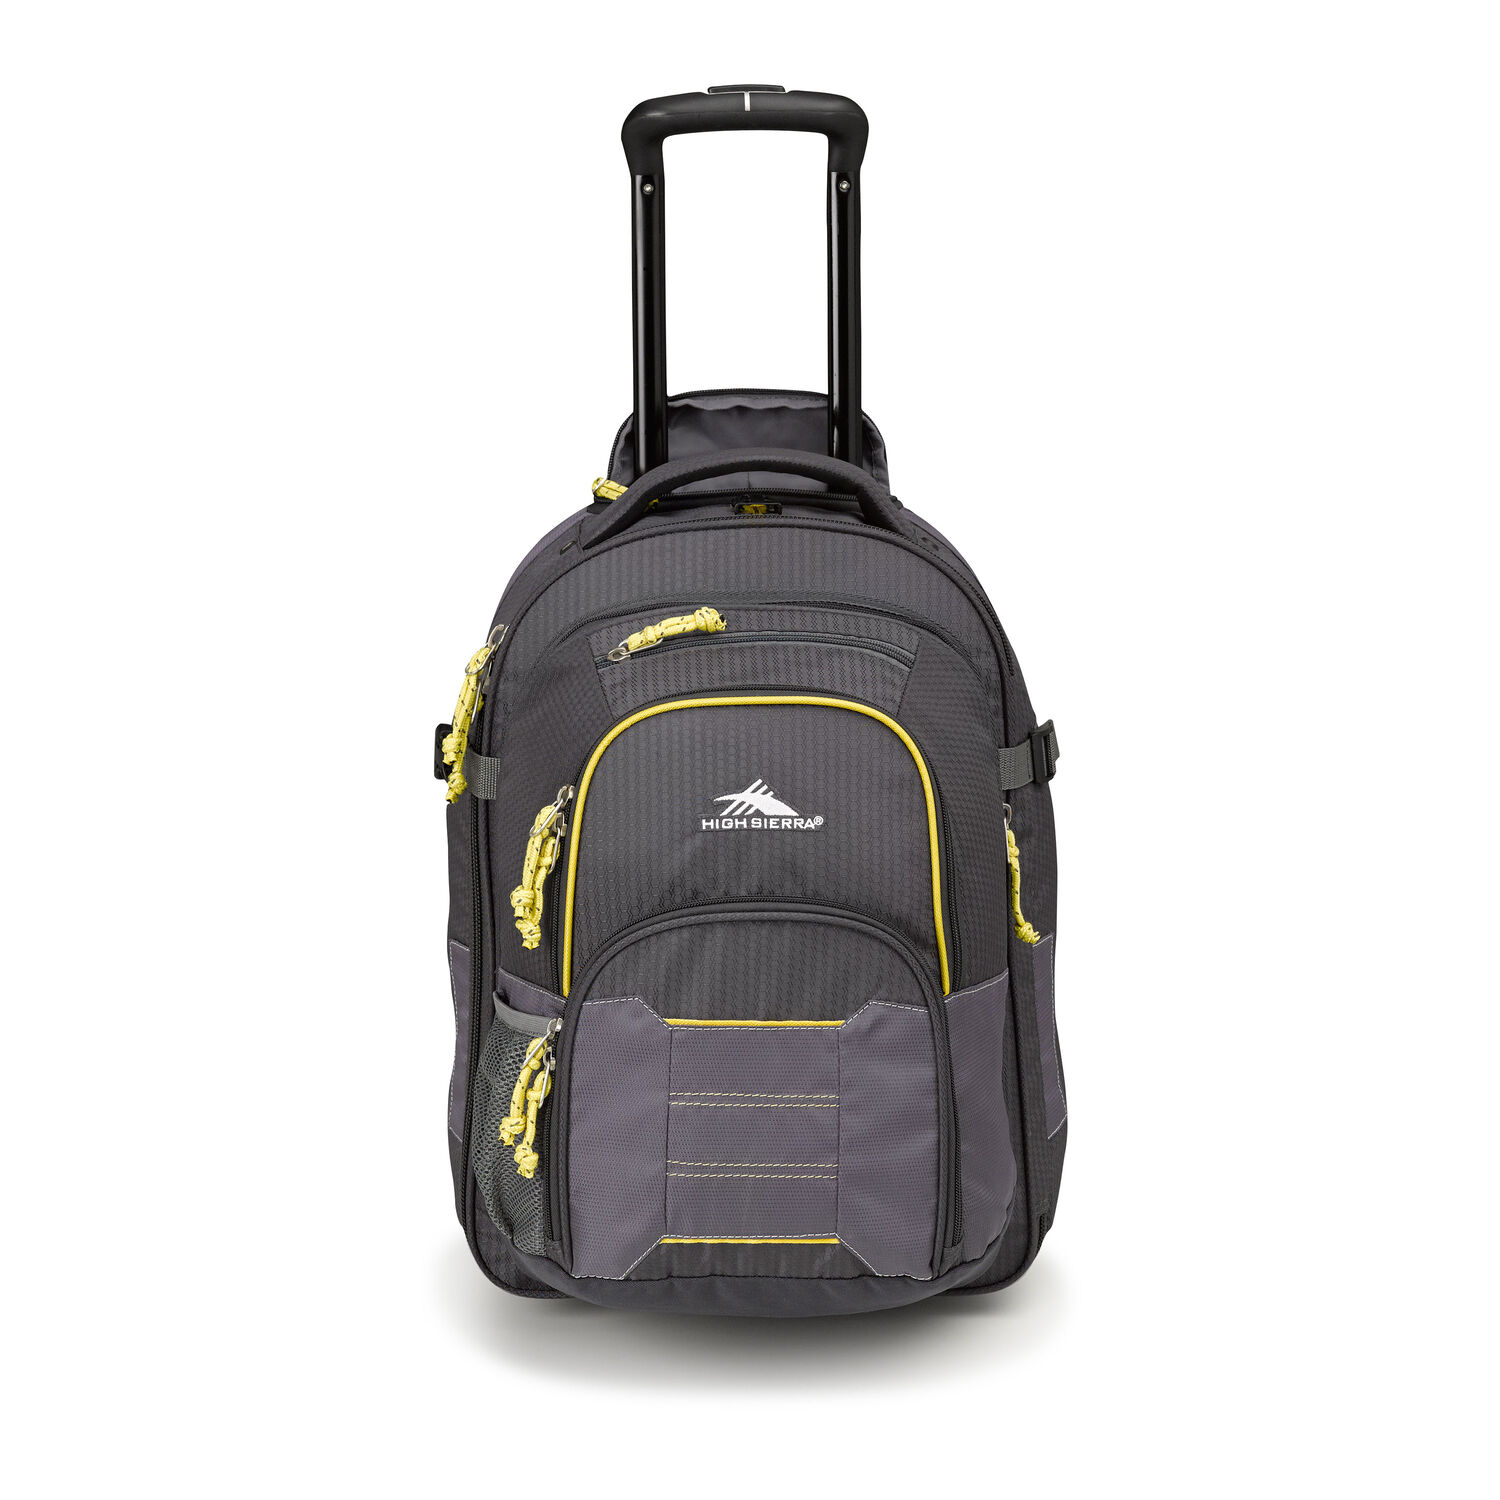 Size Of Backpack For Airline Travel